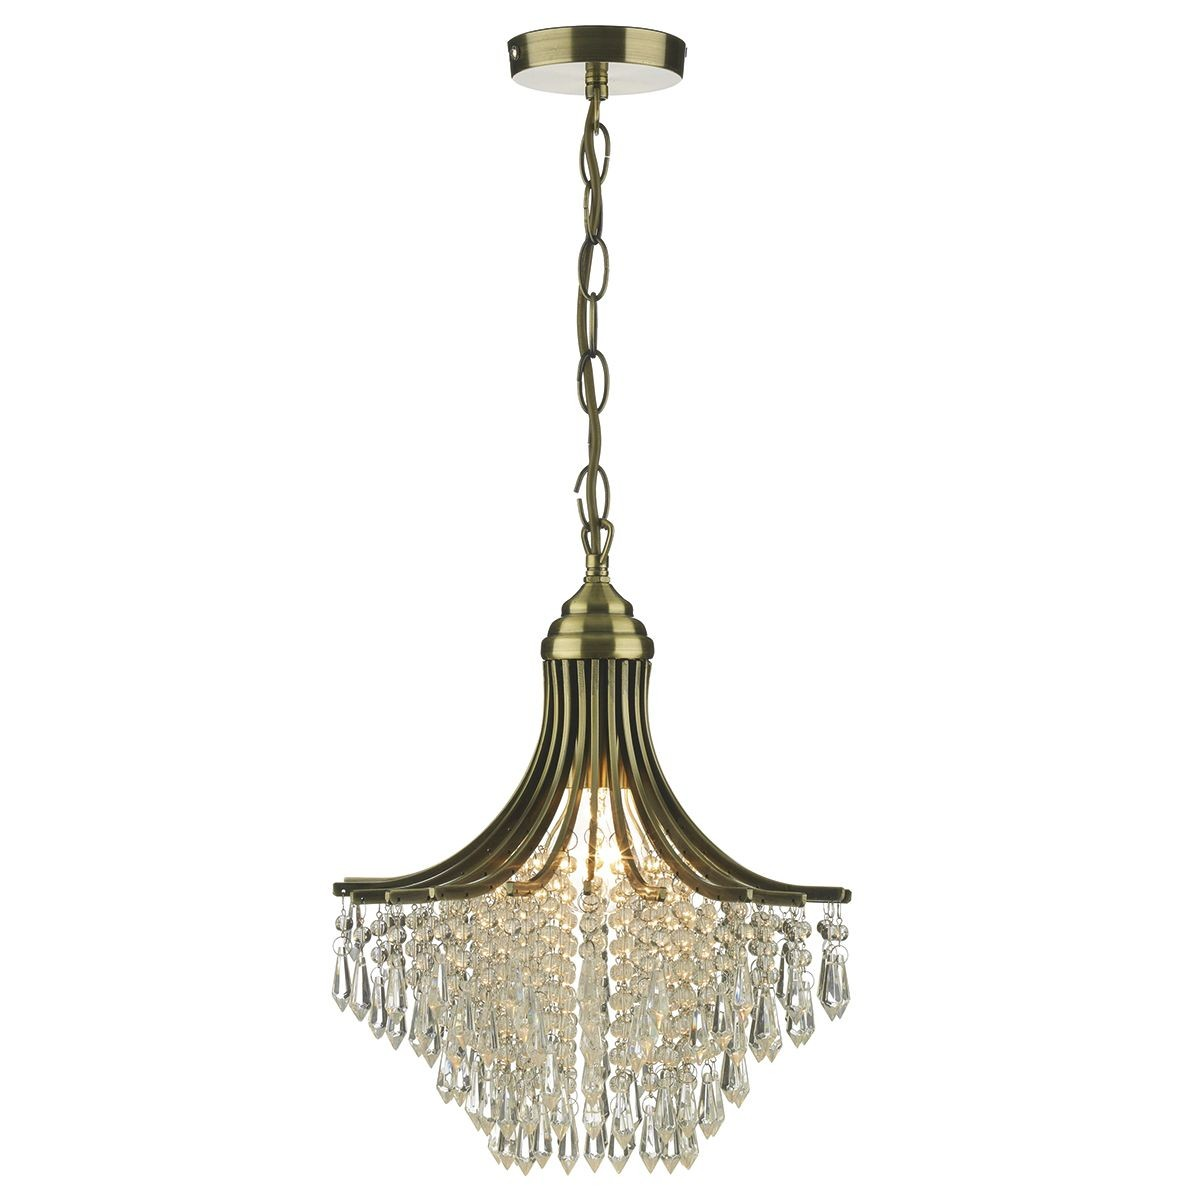 Suri Ceiling Light Crystal Decoration In Antique Brass